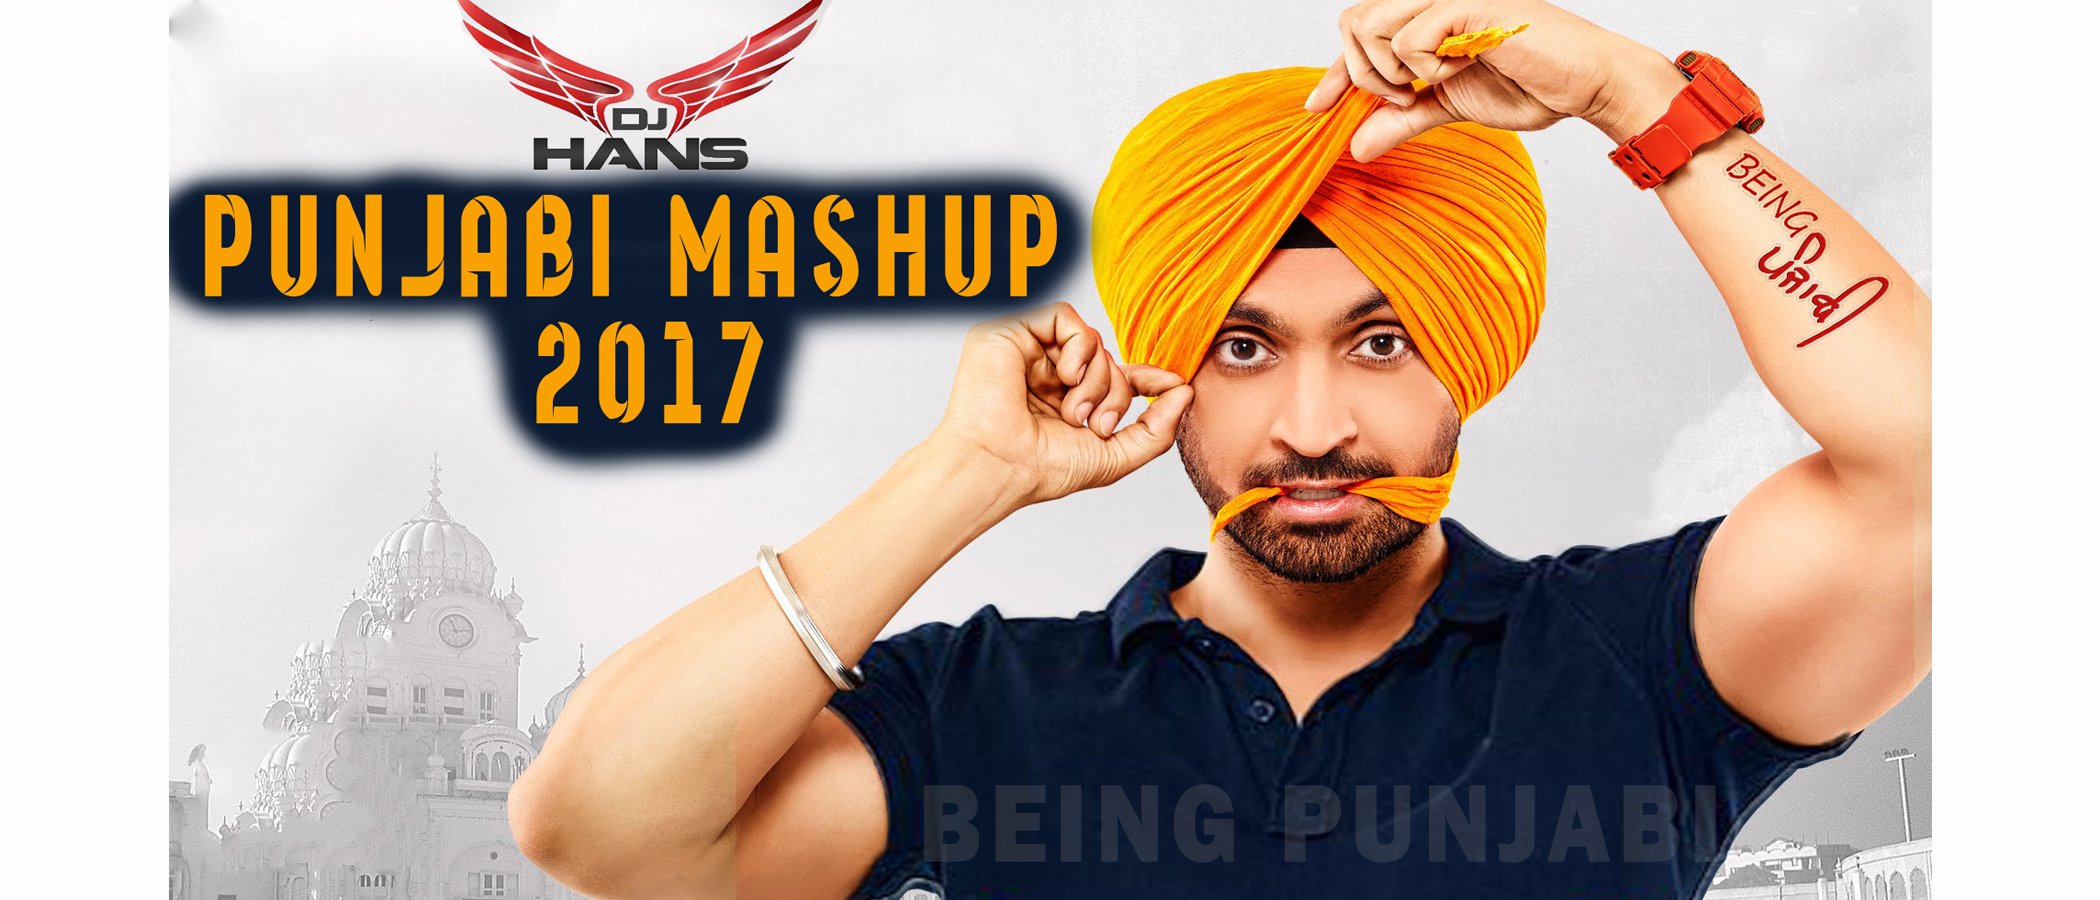 punjabi bhangra mashup 2017 dj hans mp3 download